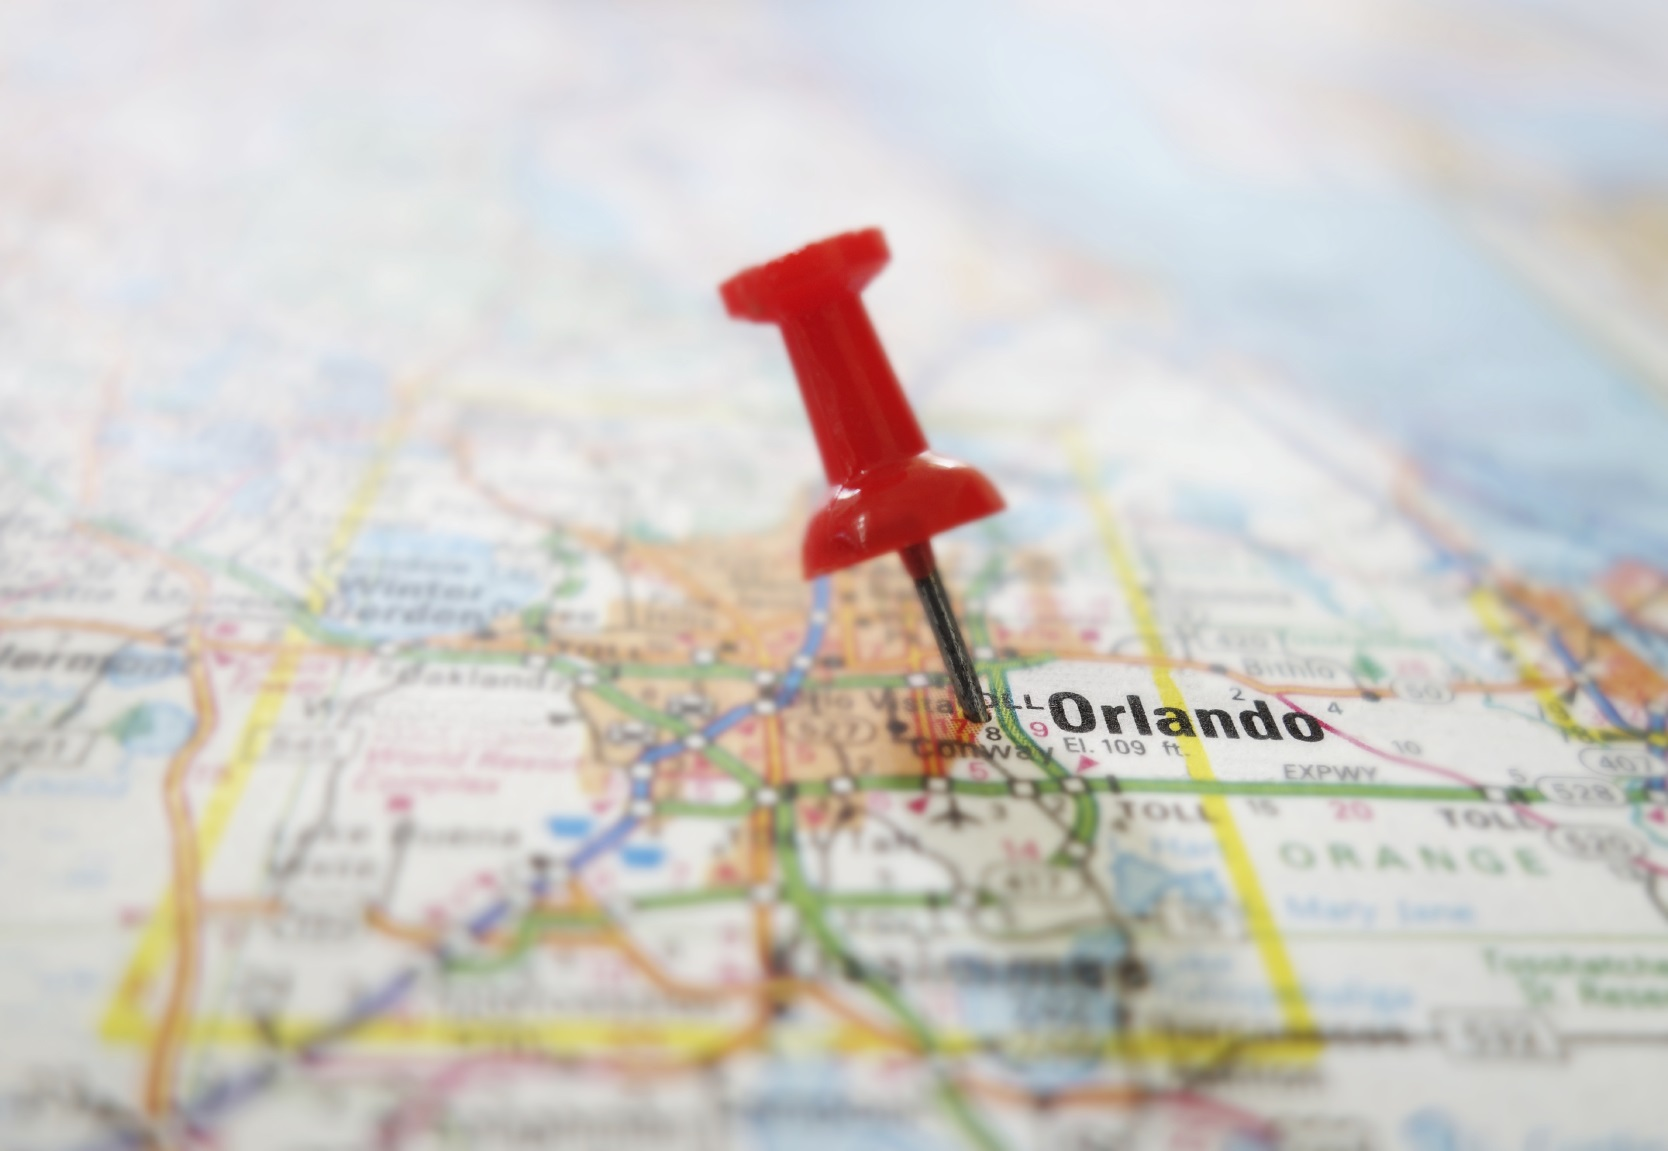 Closeup of a red tack in a map of Orlando Florida